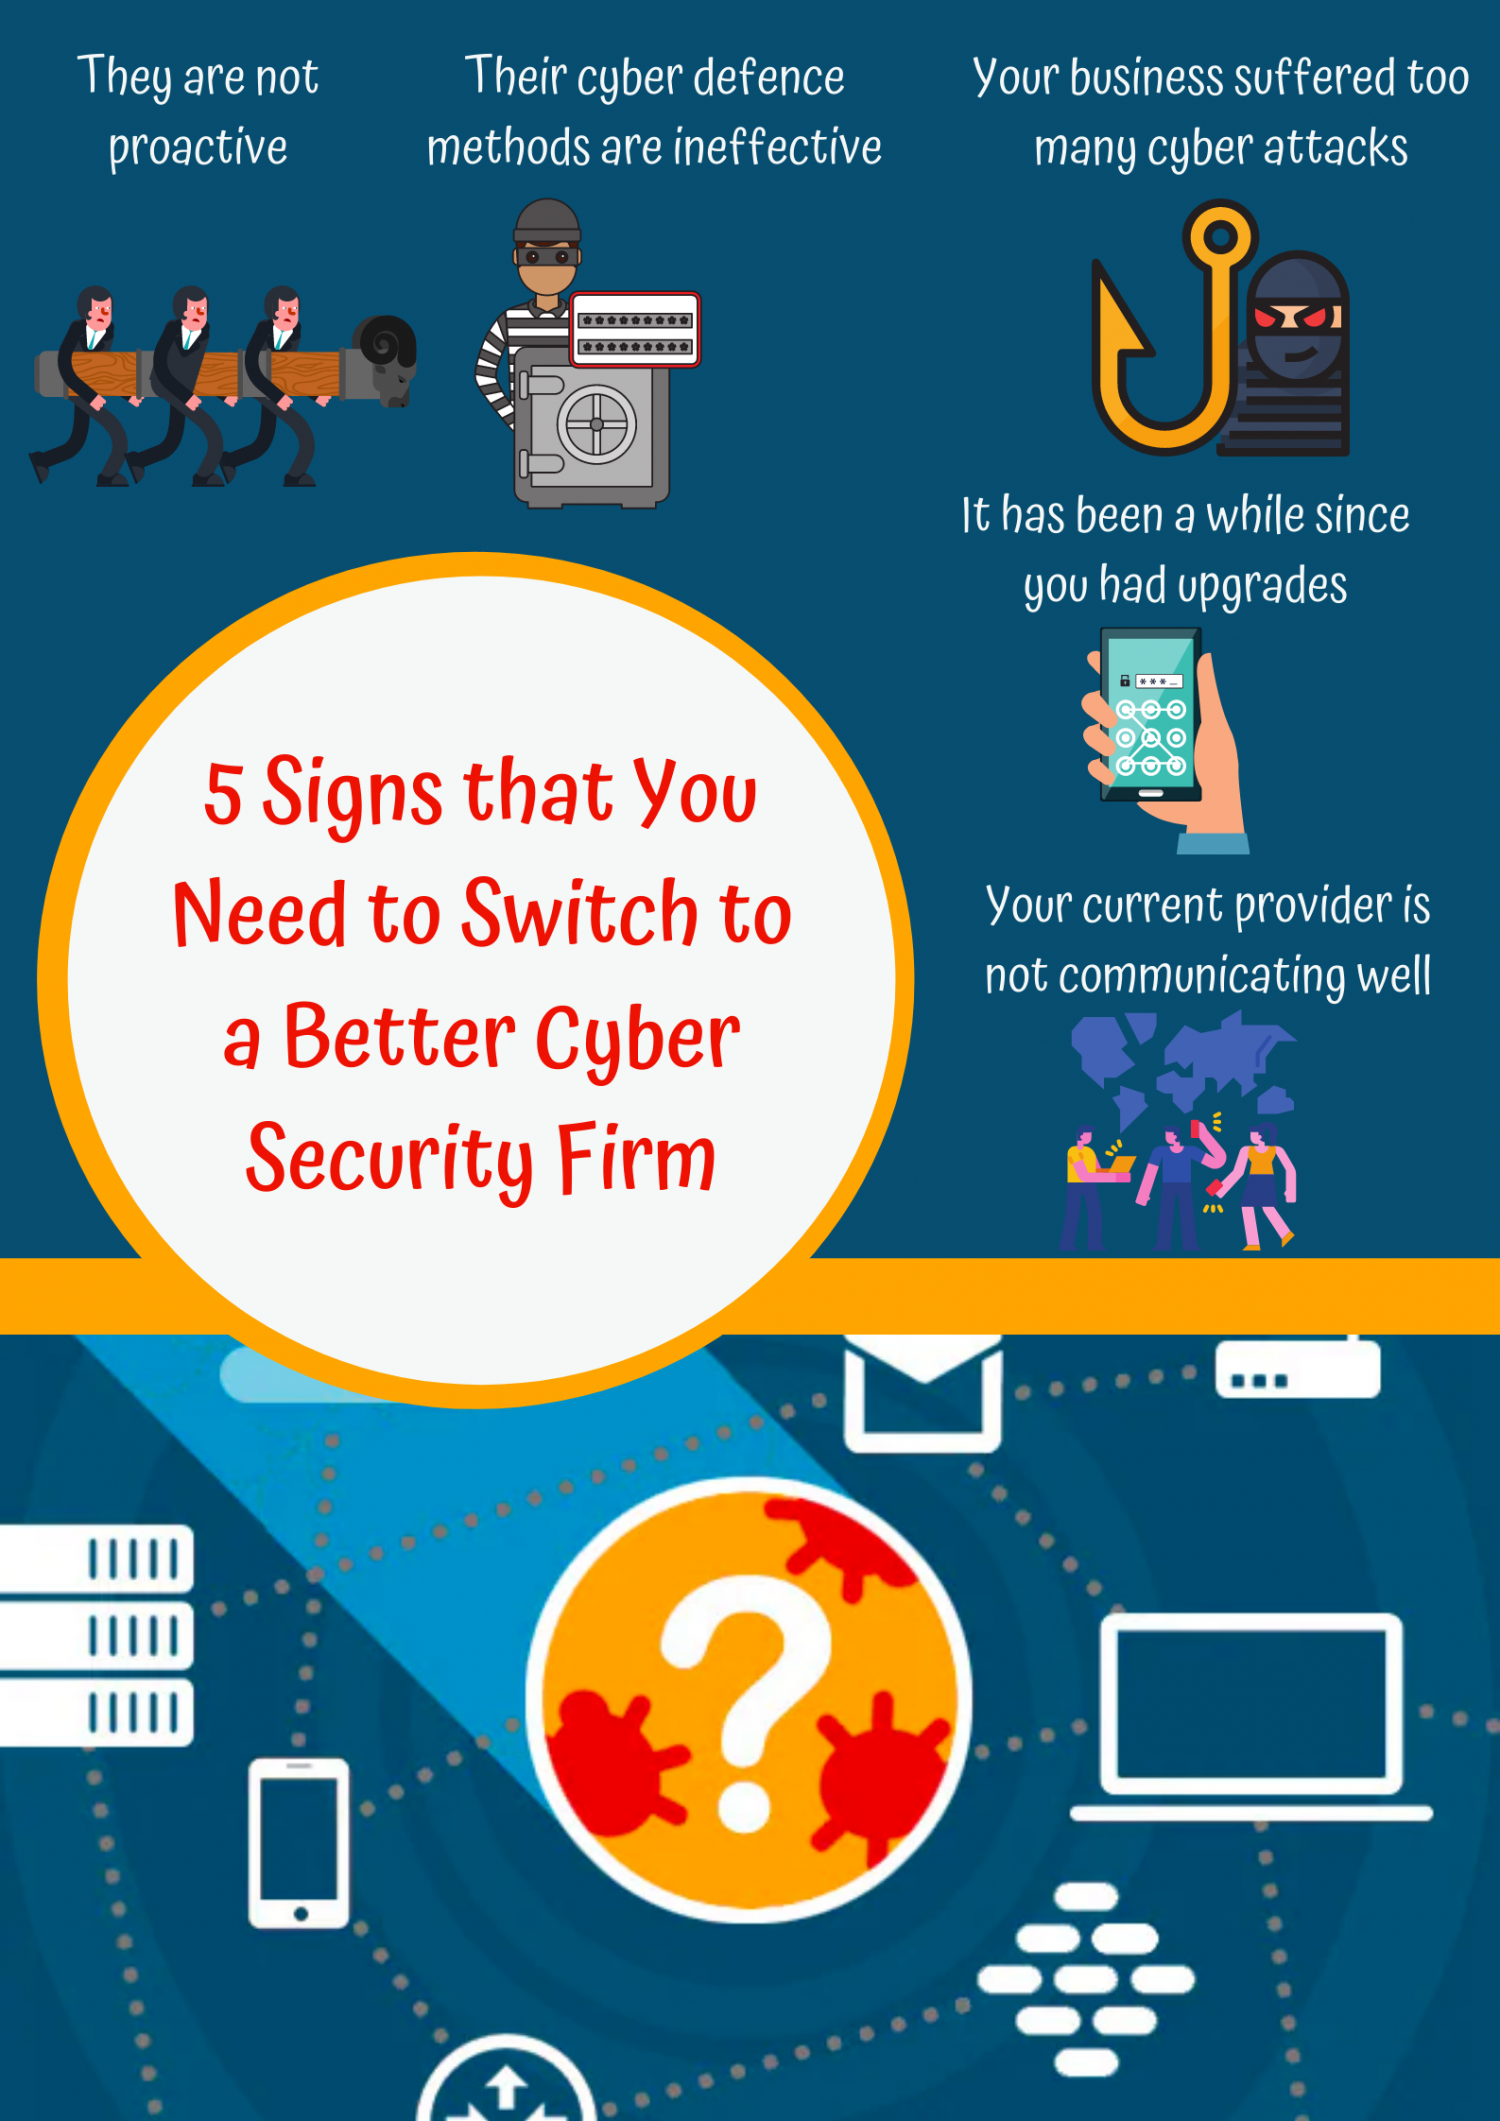 5 Signs that You Need to Switch to a Better Cyber Security Firm Infographic